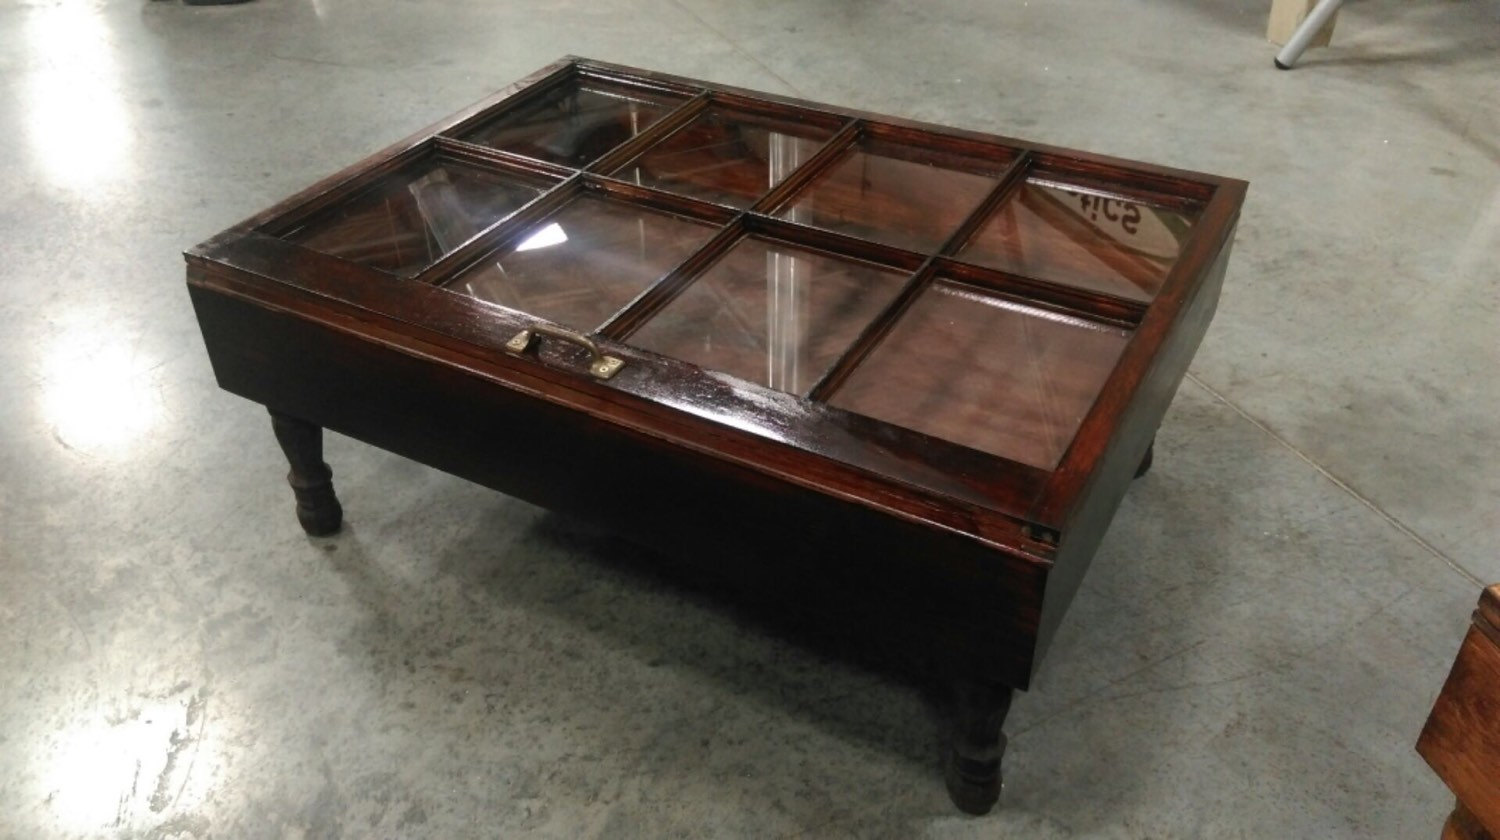 Rustic Coffee Table Military Display Shadow Box 8 Pane Window Storage